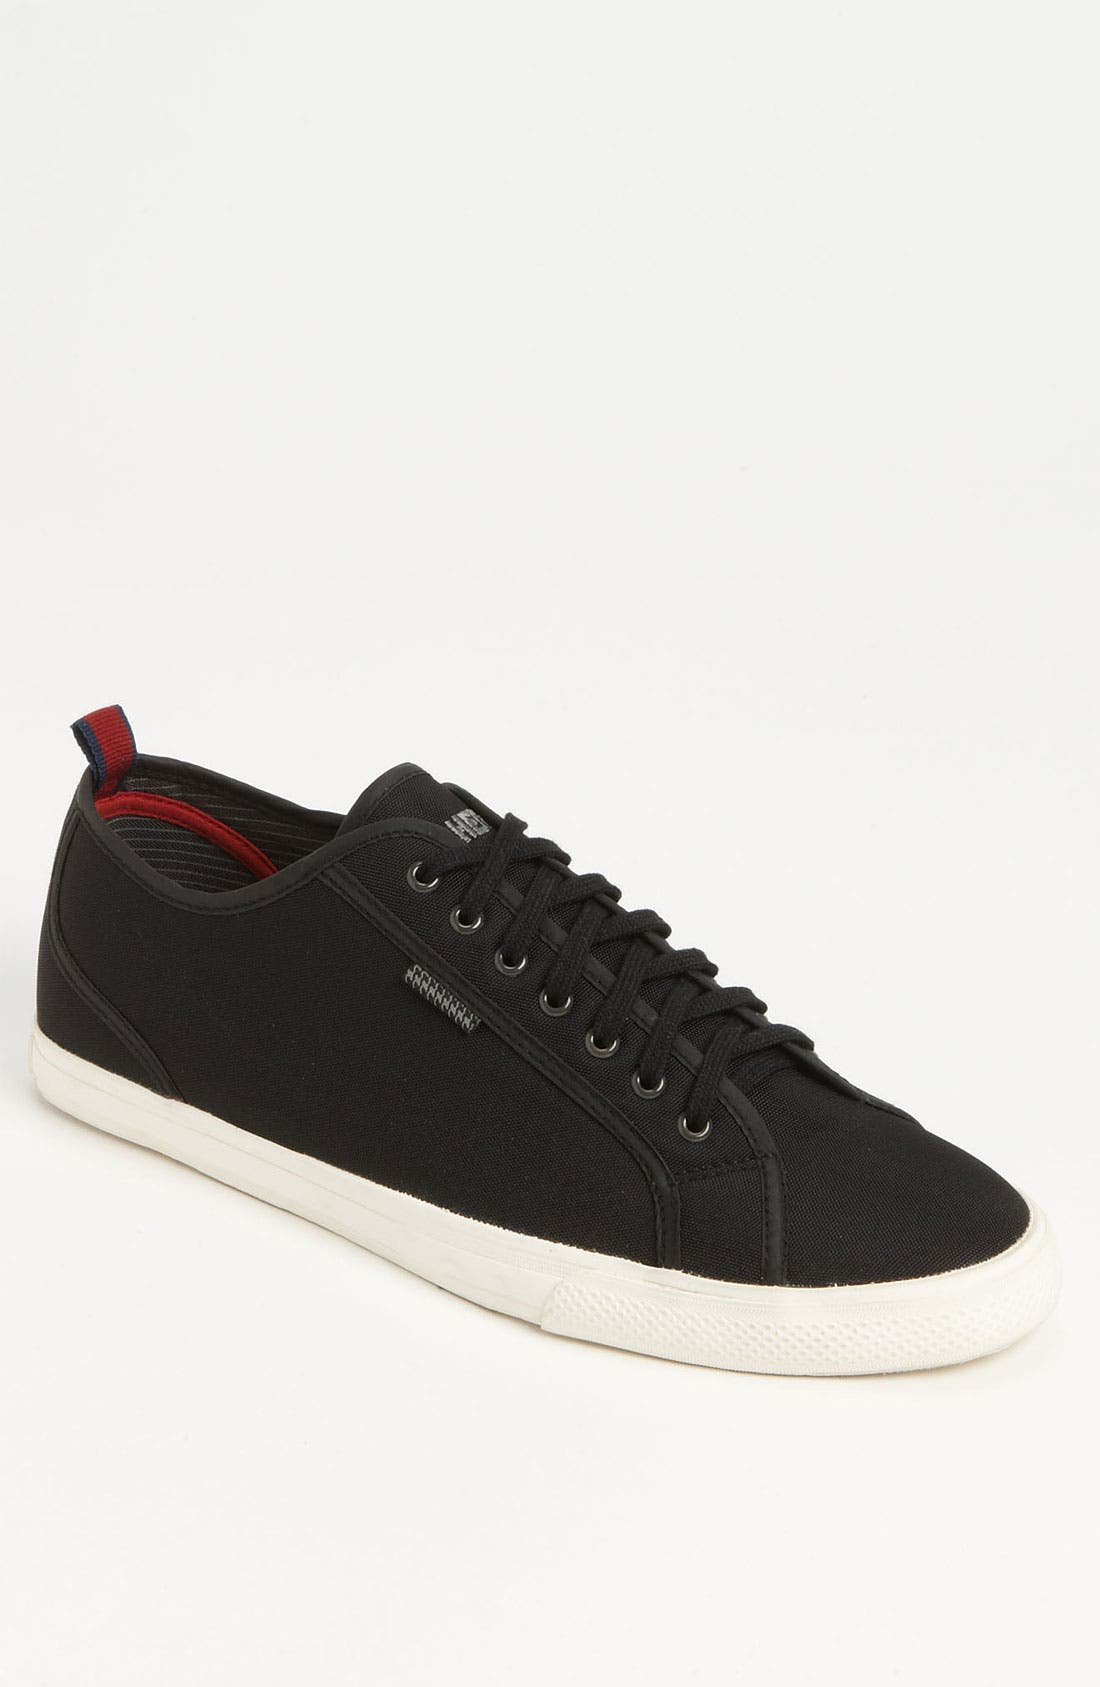 Main Image - Ben Sherman 'Breckon' Sneaker (Men)